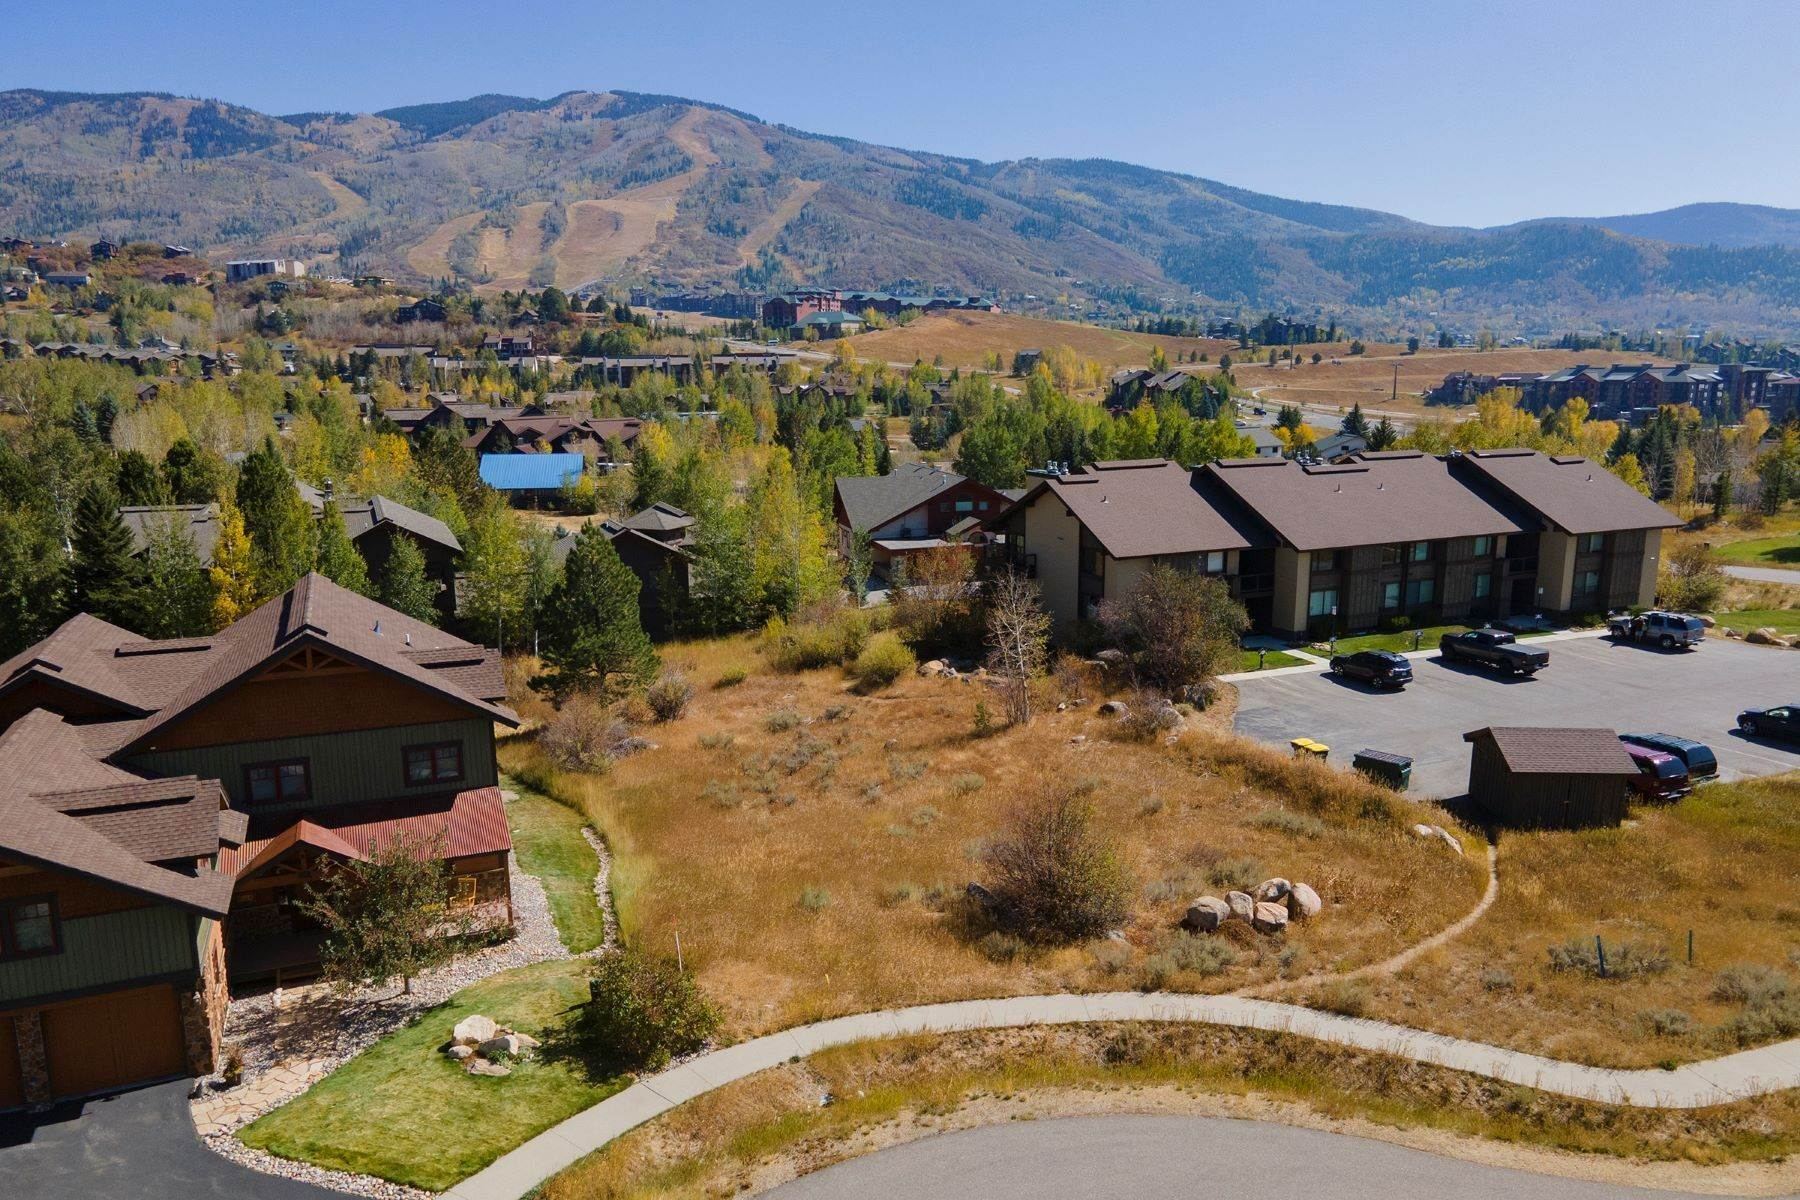 Property for Sale at Lot 2 Montview Park 2000 Trollhaugen Lane Steamboat Springs, Colorado 80487 United States